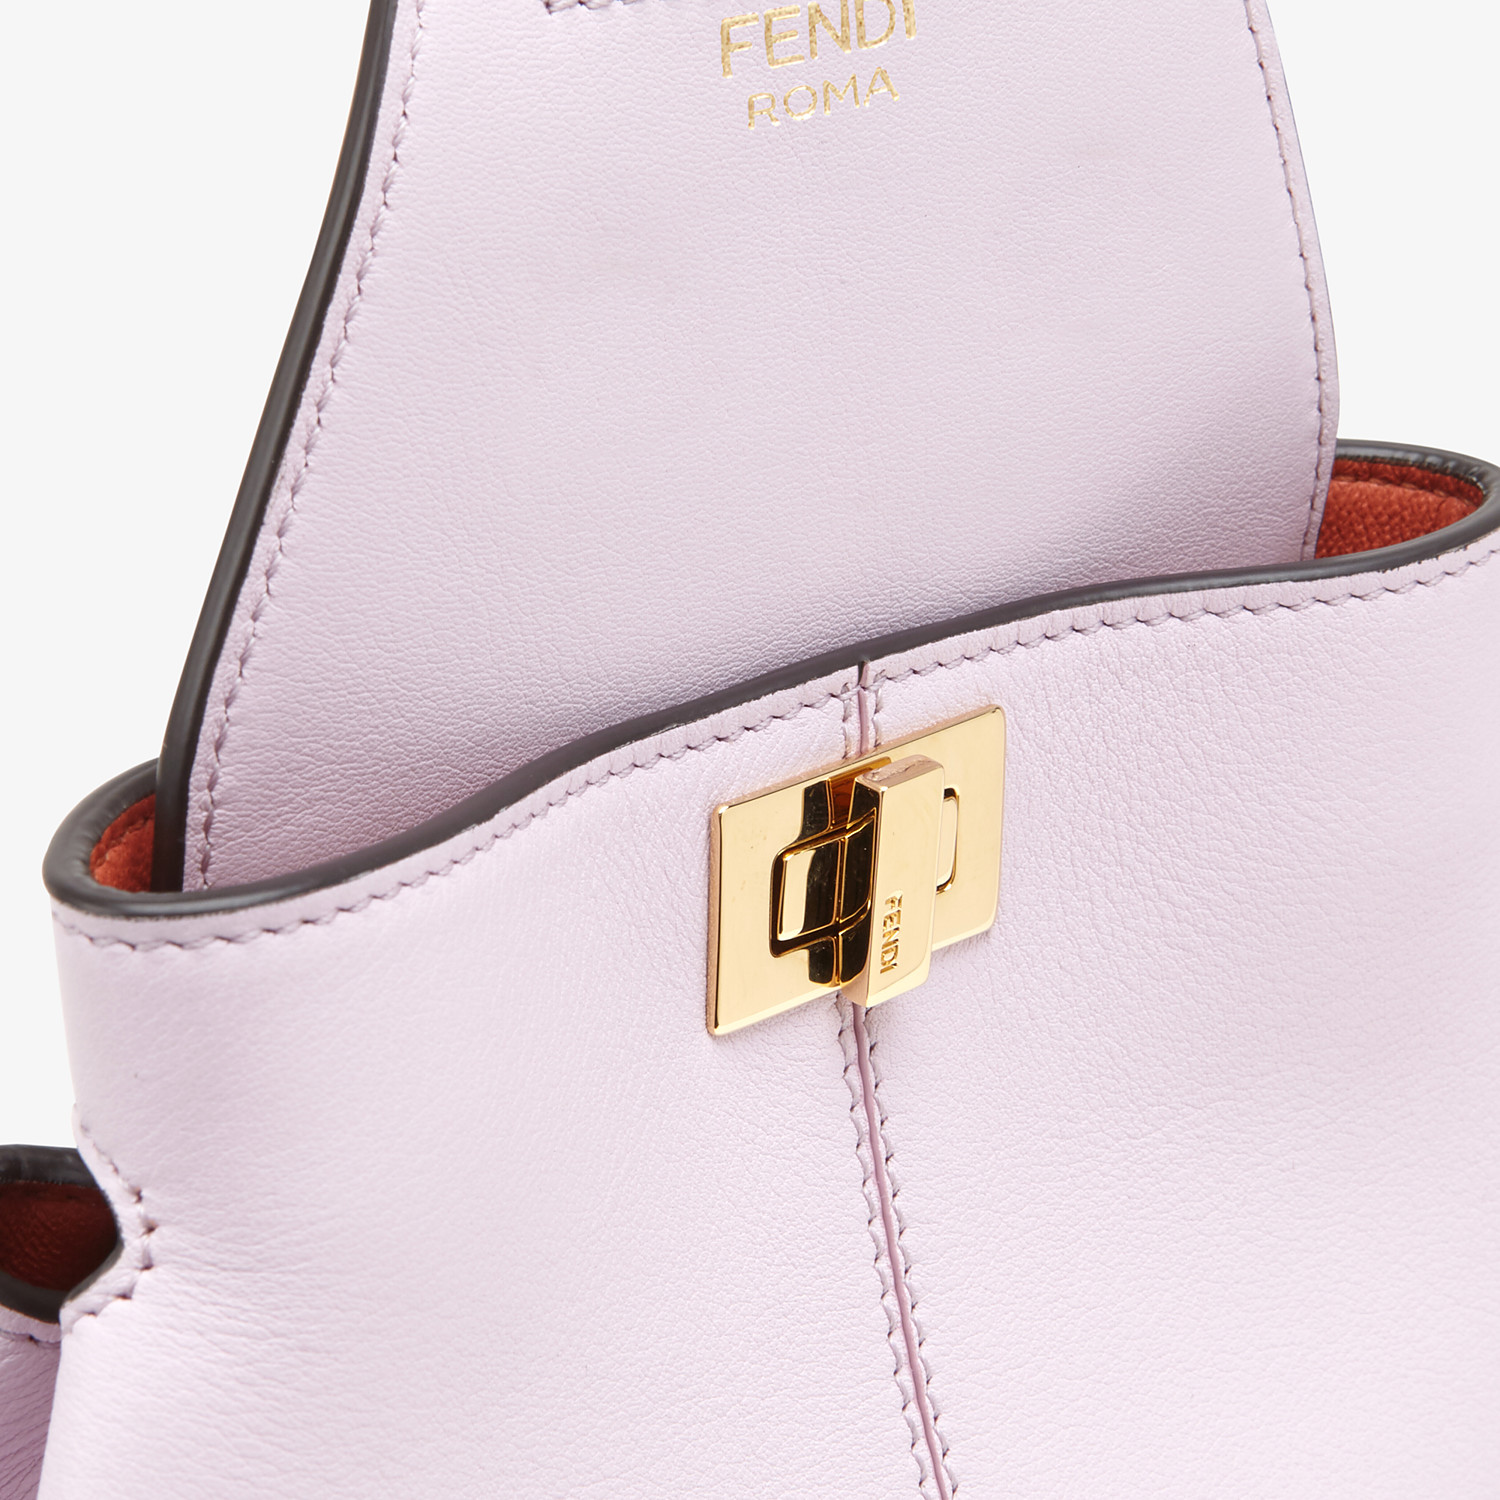 FENDI GUITAR BAG - Lilac leather mini-bag - view 5 detail